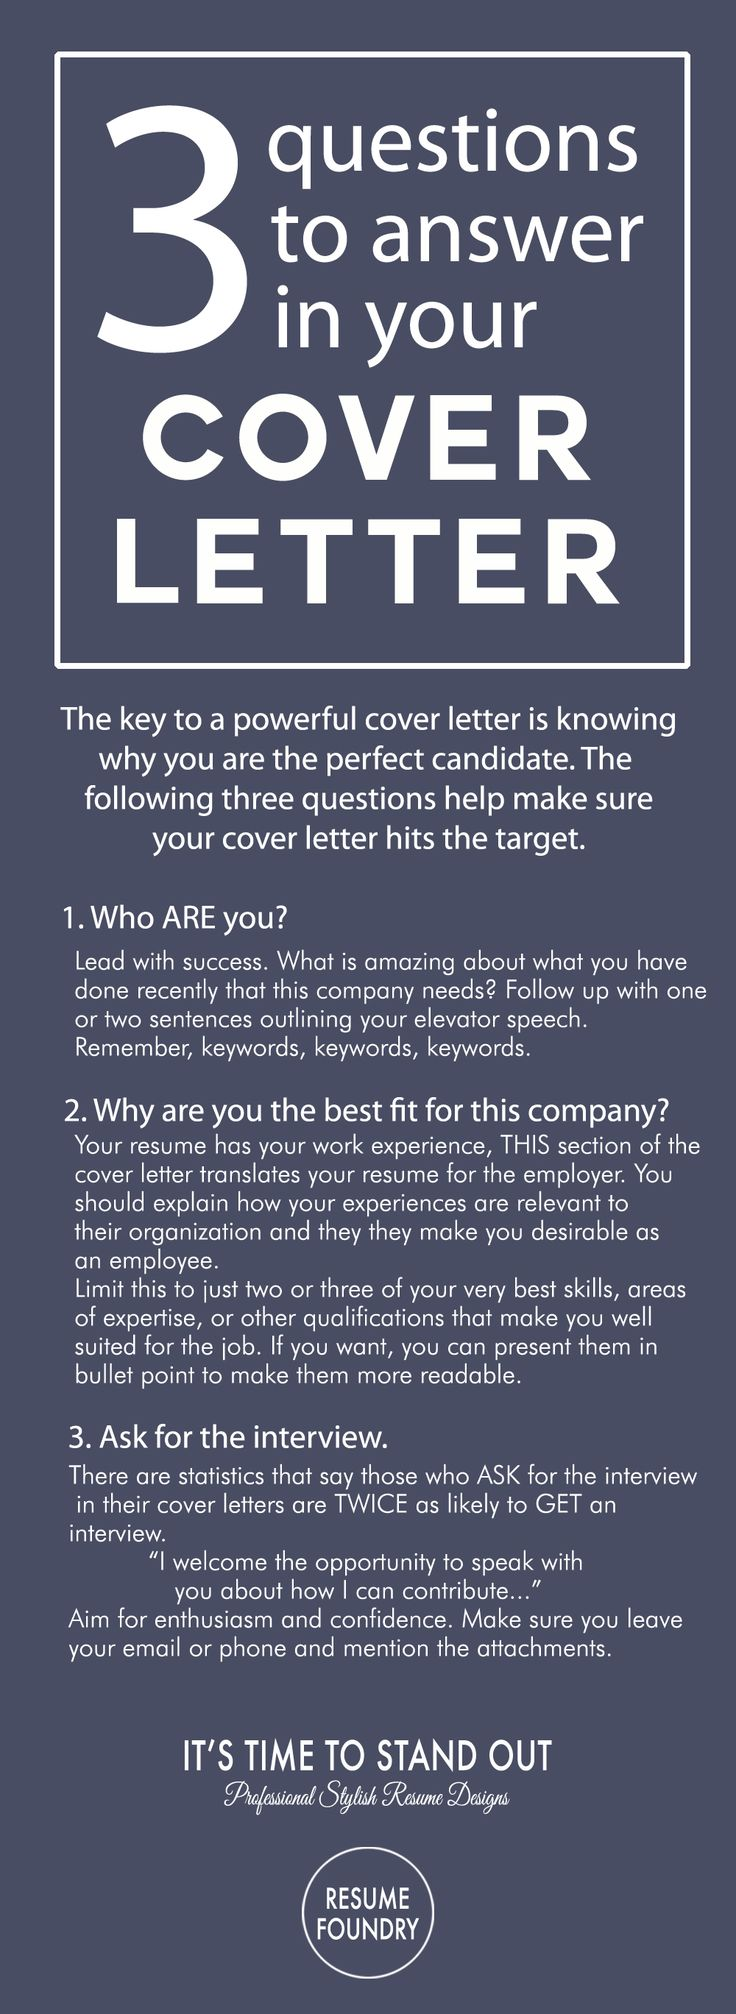 58 Best Career Corner Images On Pinterest Career Advice